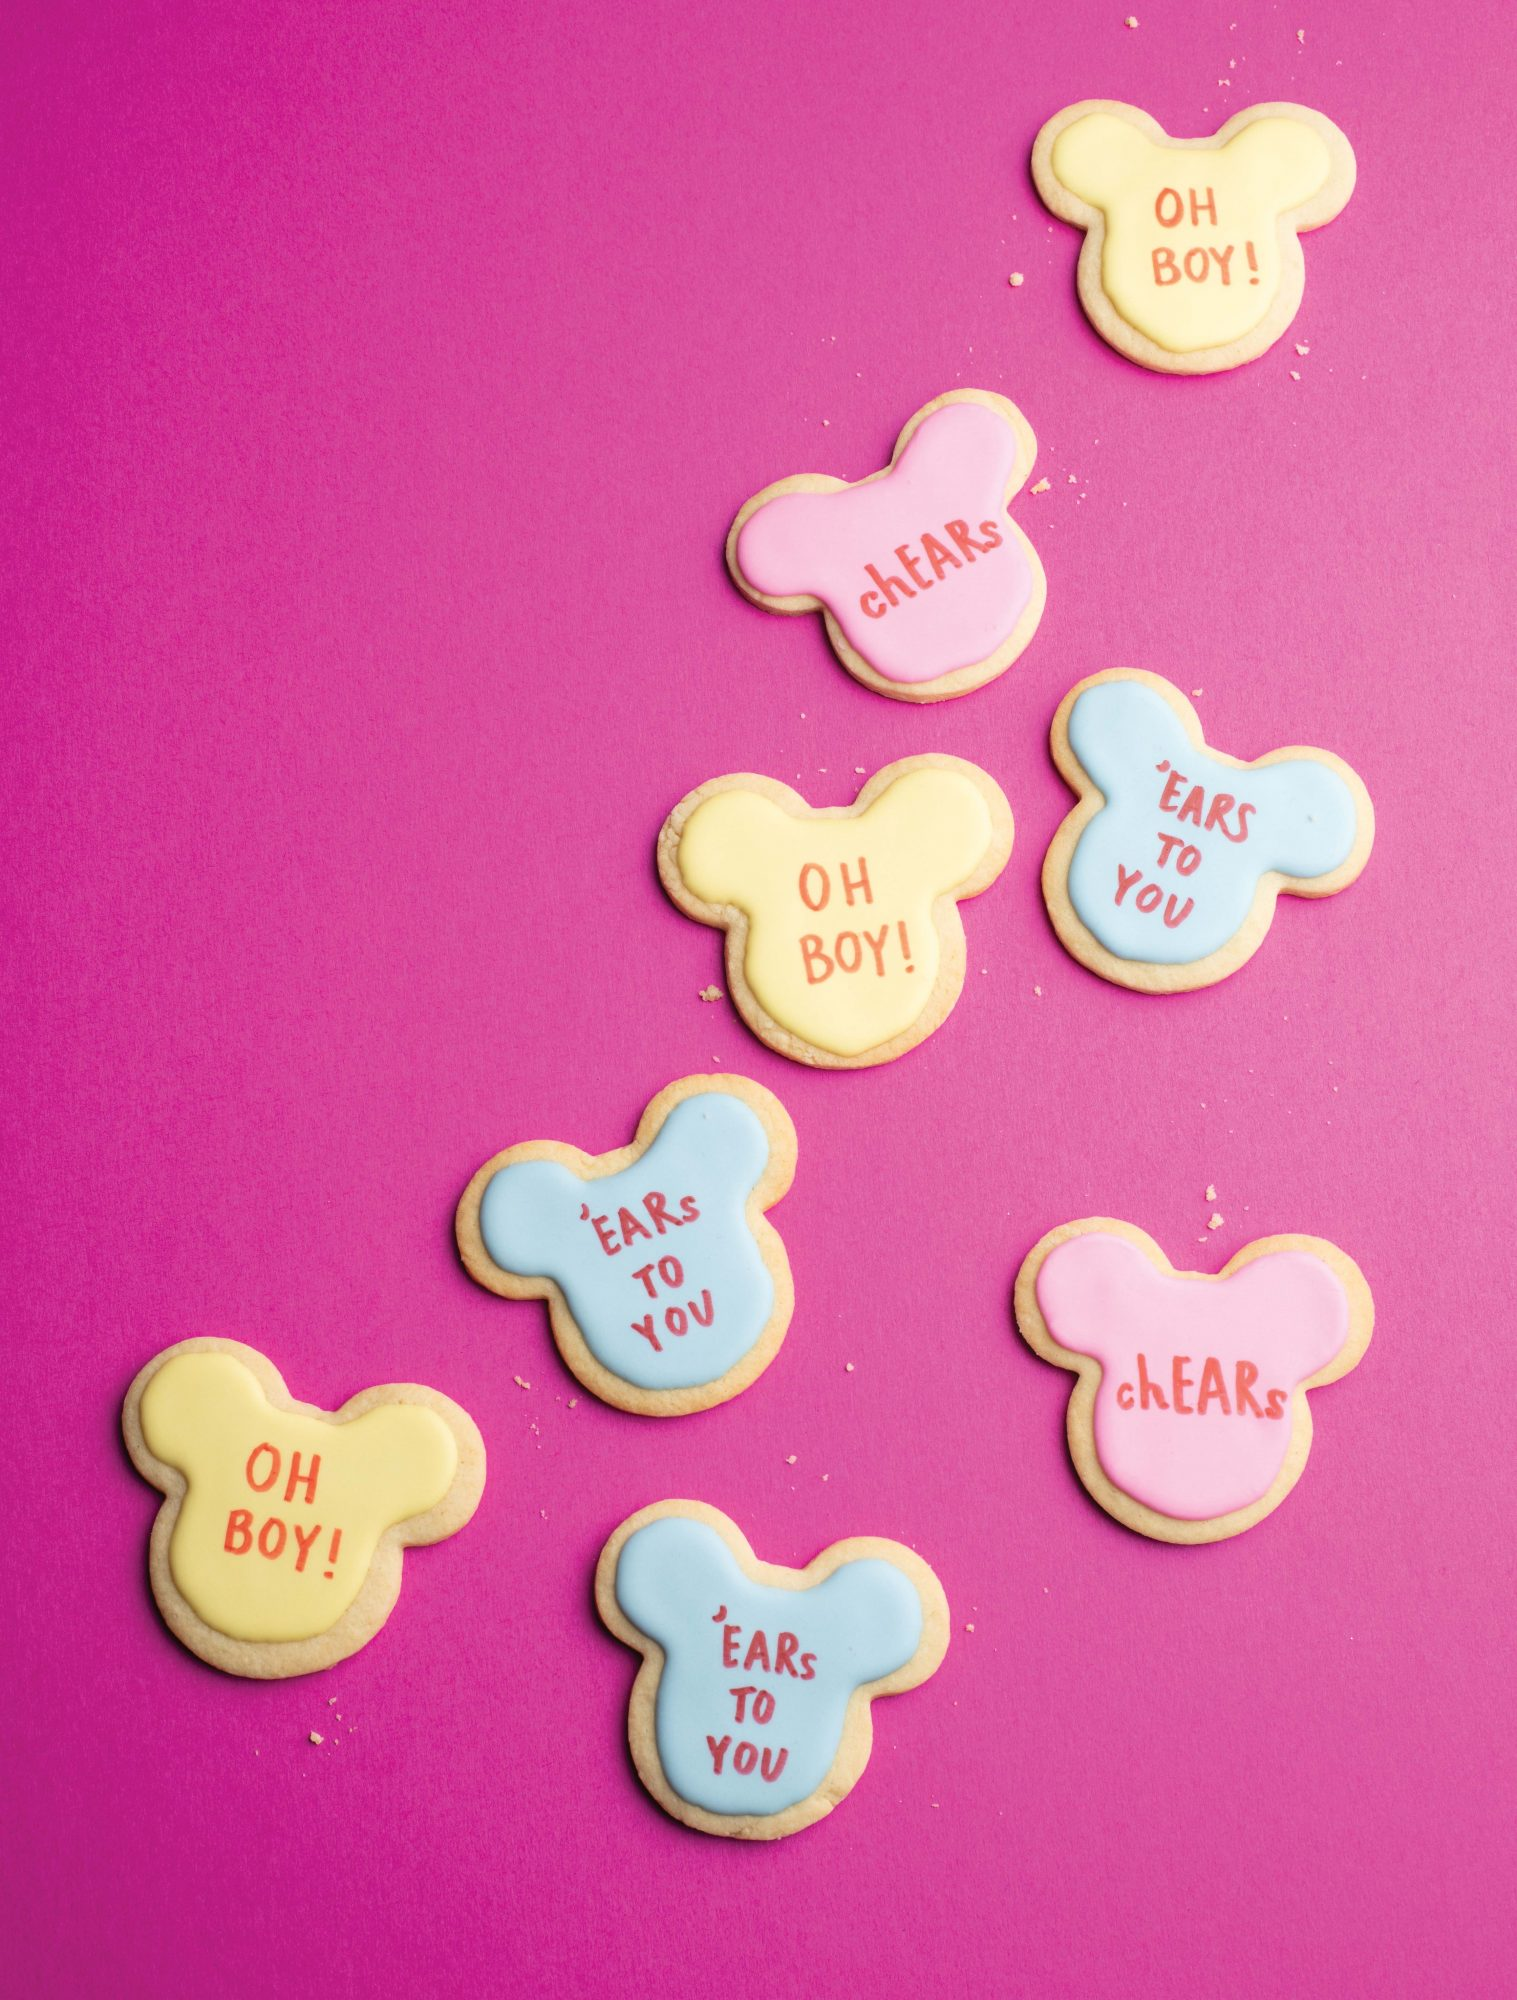 Disney-themed cookies shaped like Mickey Mouse heads with conversation heart messages in frosting